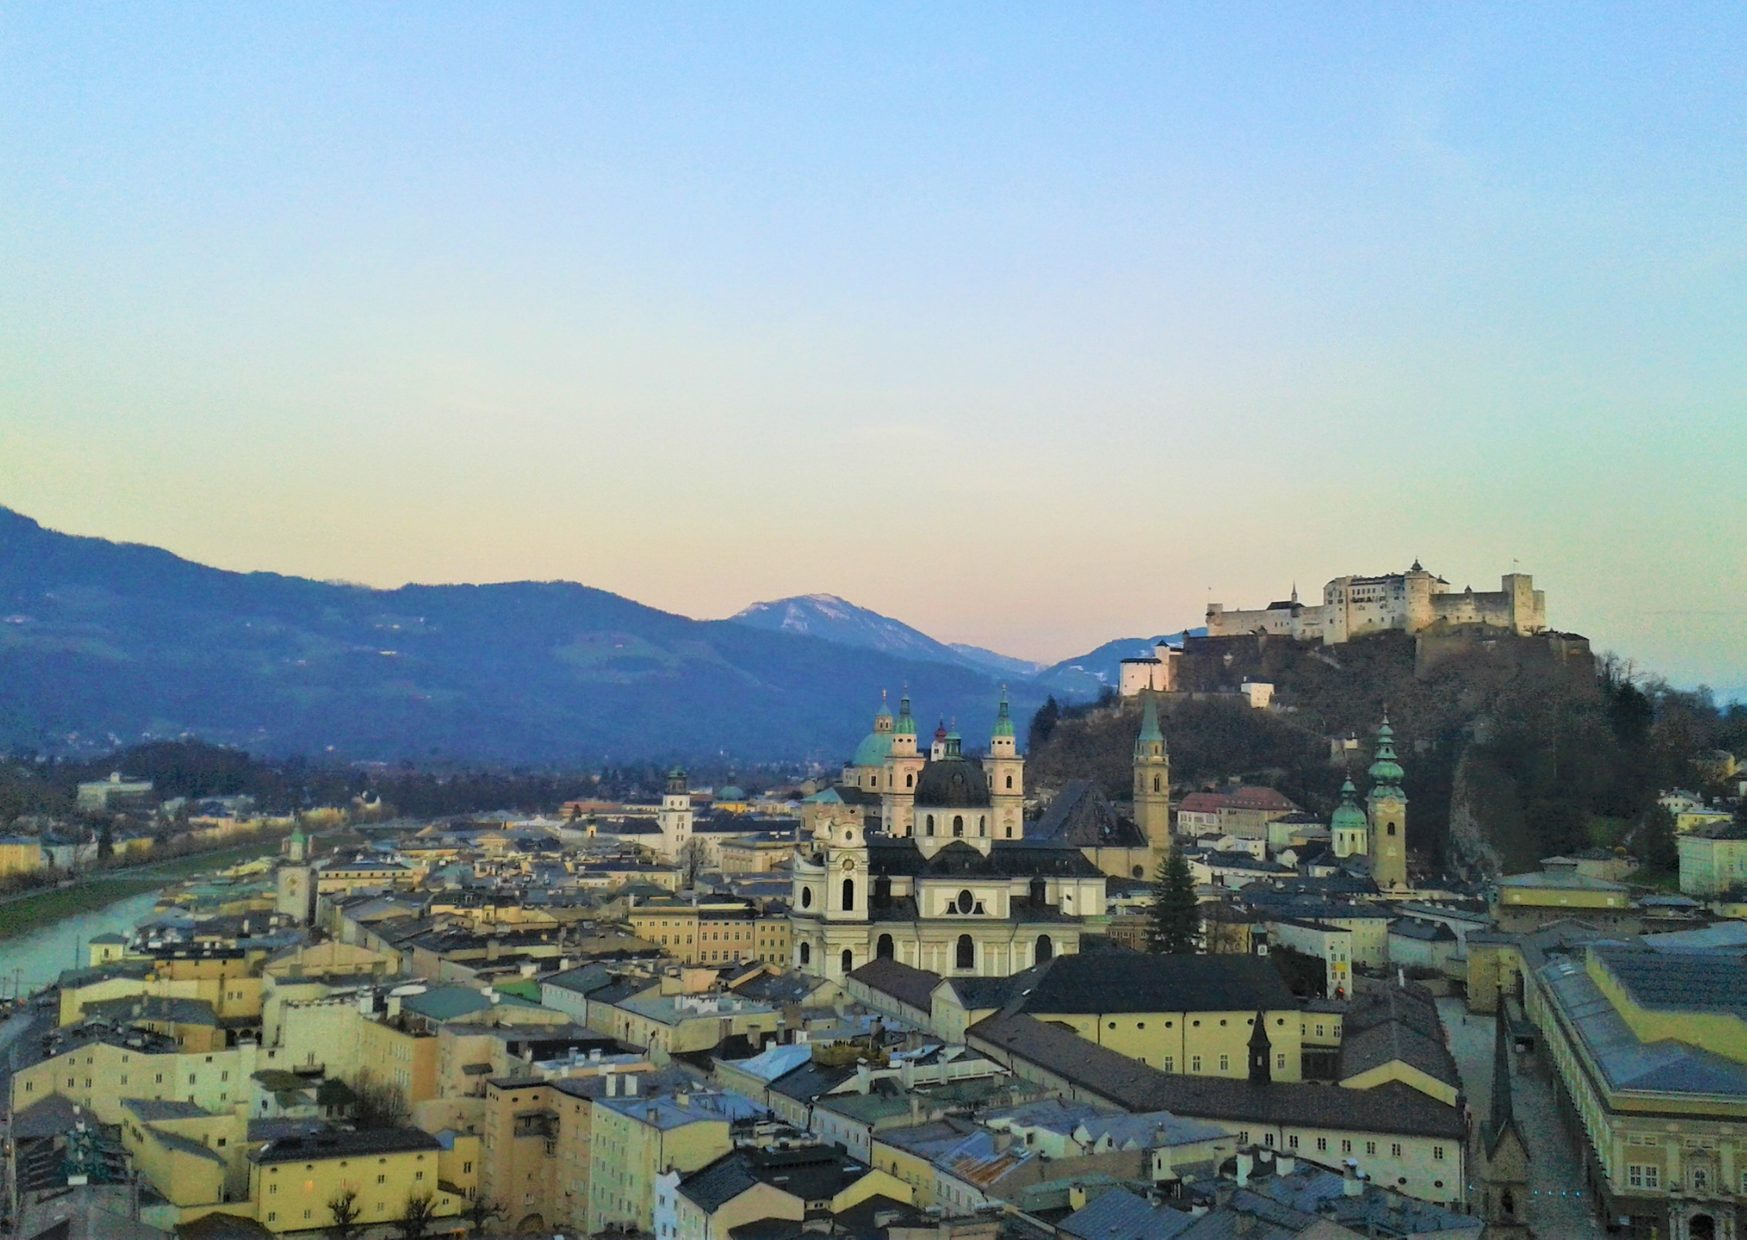 Interesting facts about Salzburg - photo by Voices of Travel